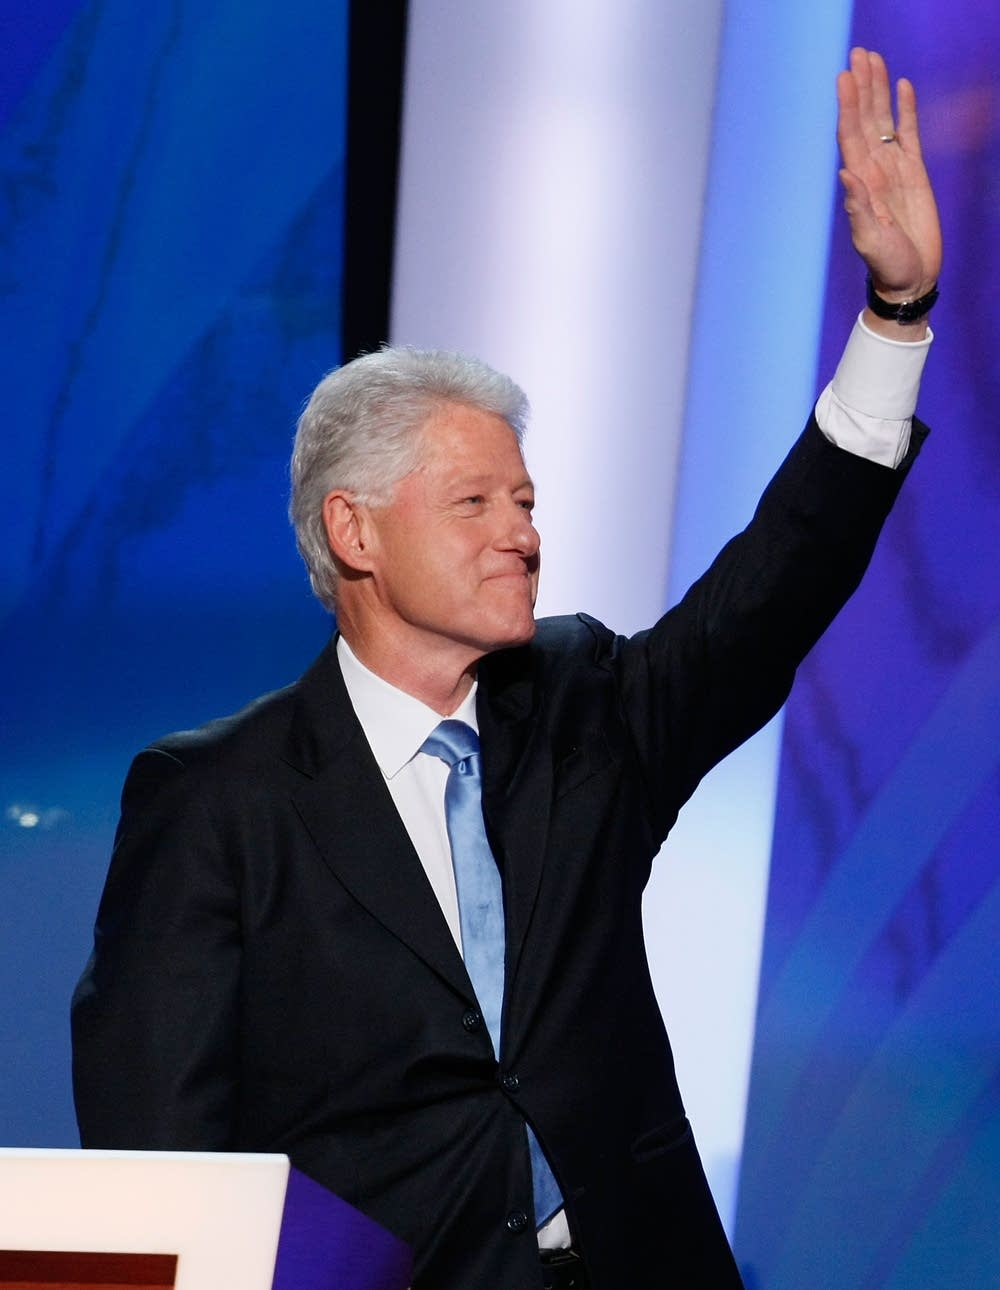 Former U.S. President Bill Clinton at the DNC